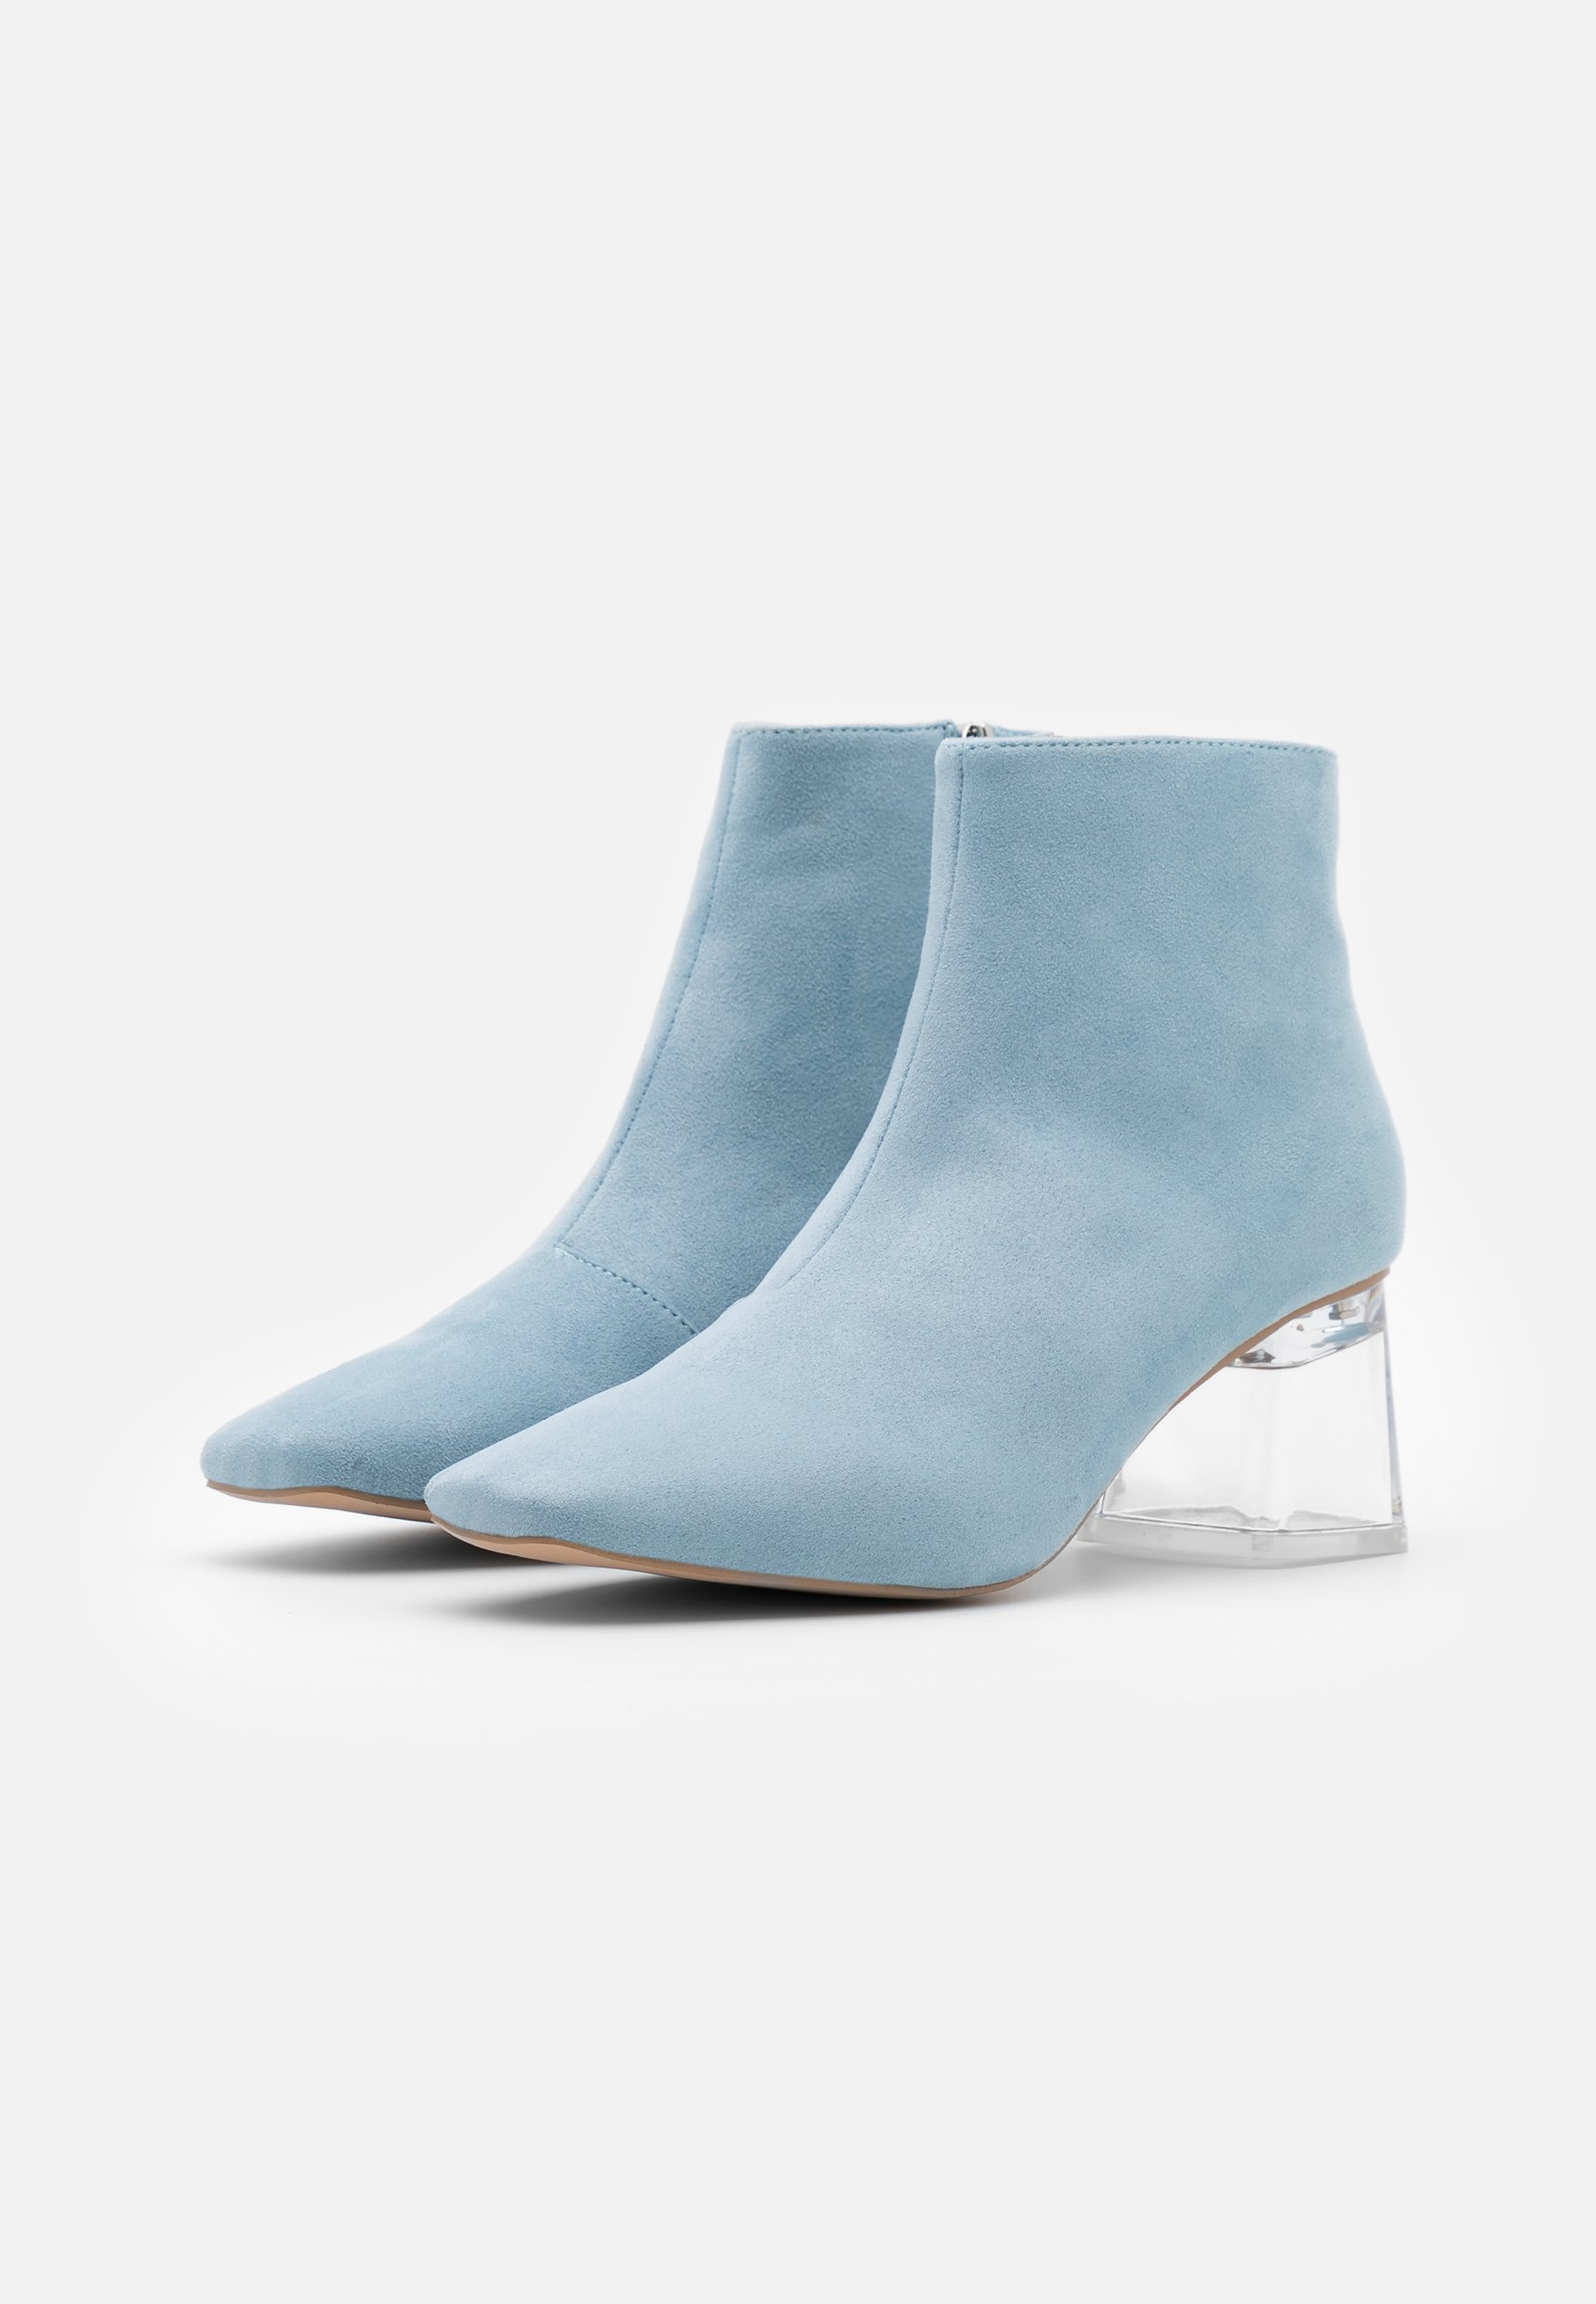 BEBO ELSIE Ankle Boot blue/blau